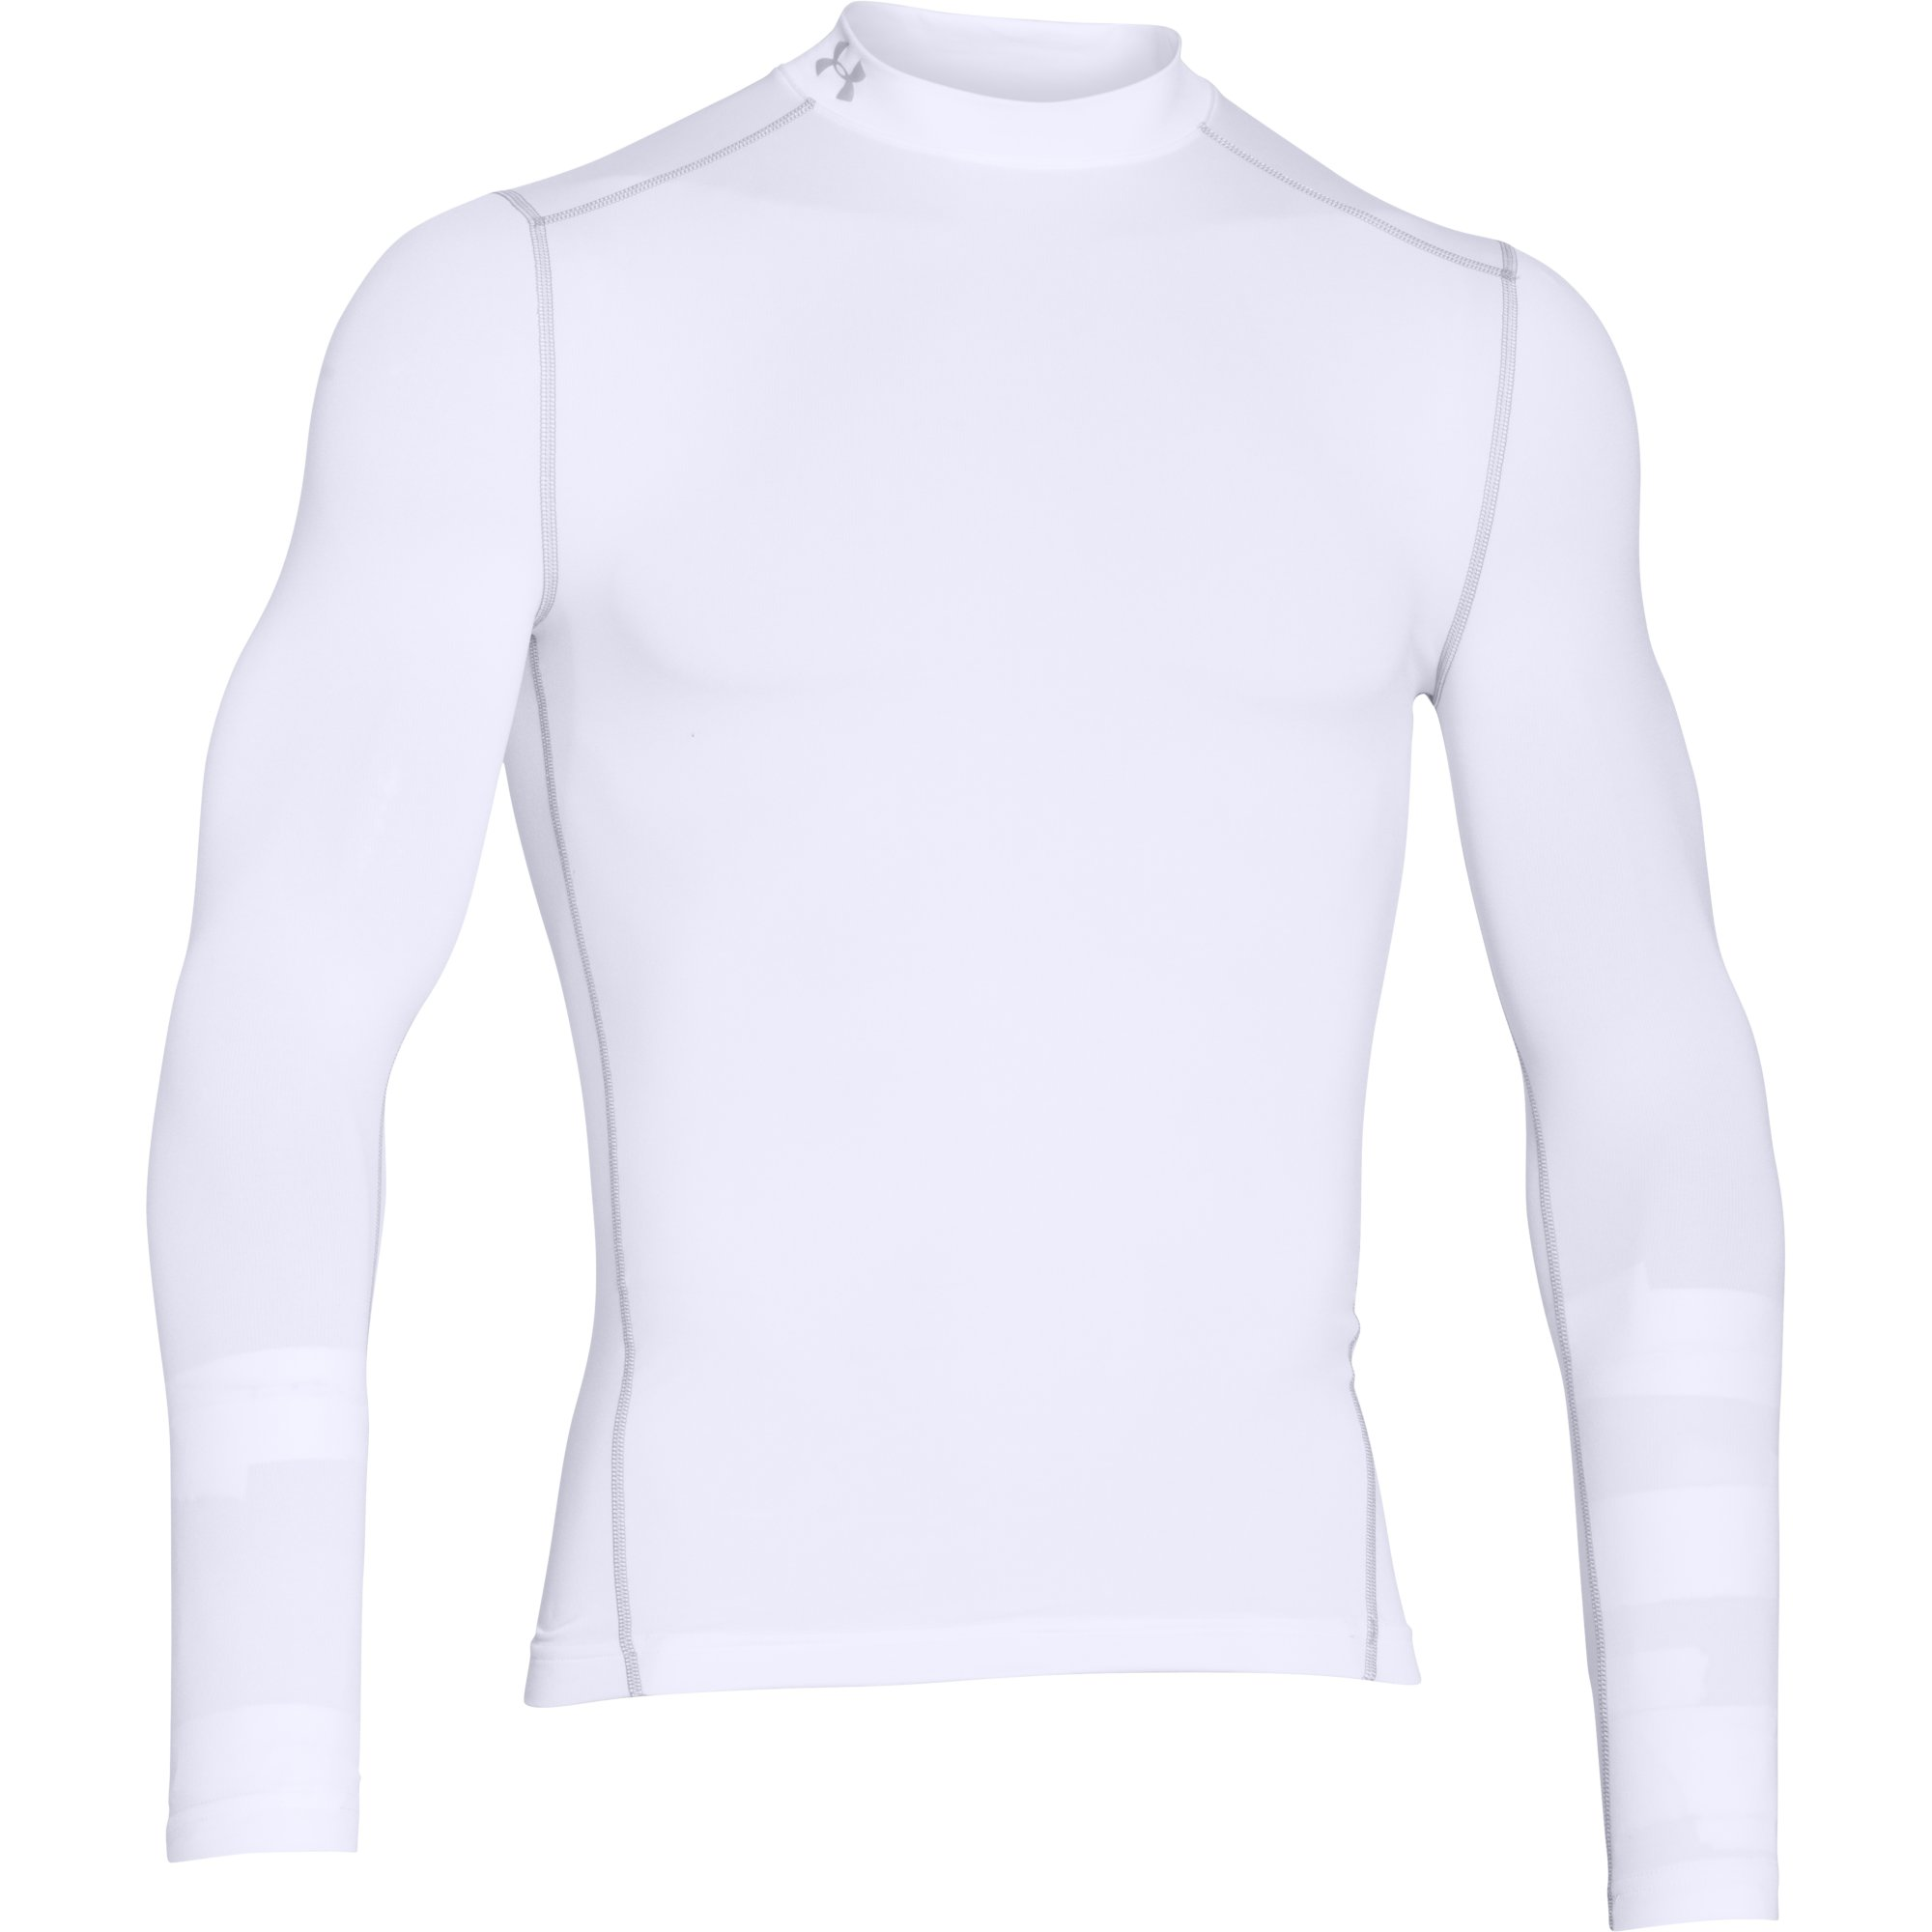 a762acd1 Wiggle | Under Armour ColdGear Armour Mock LS | Compression Tops